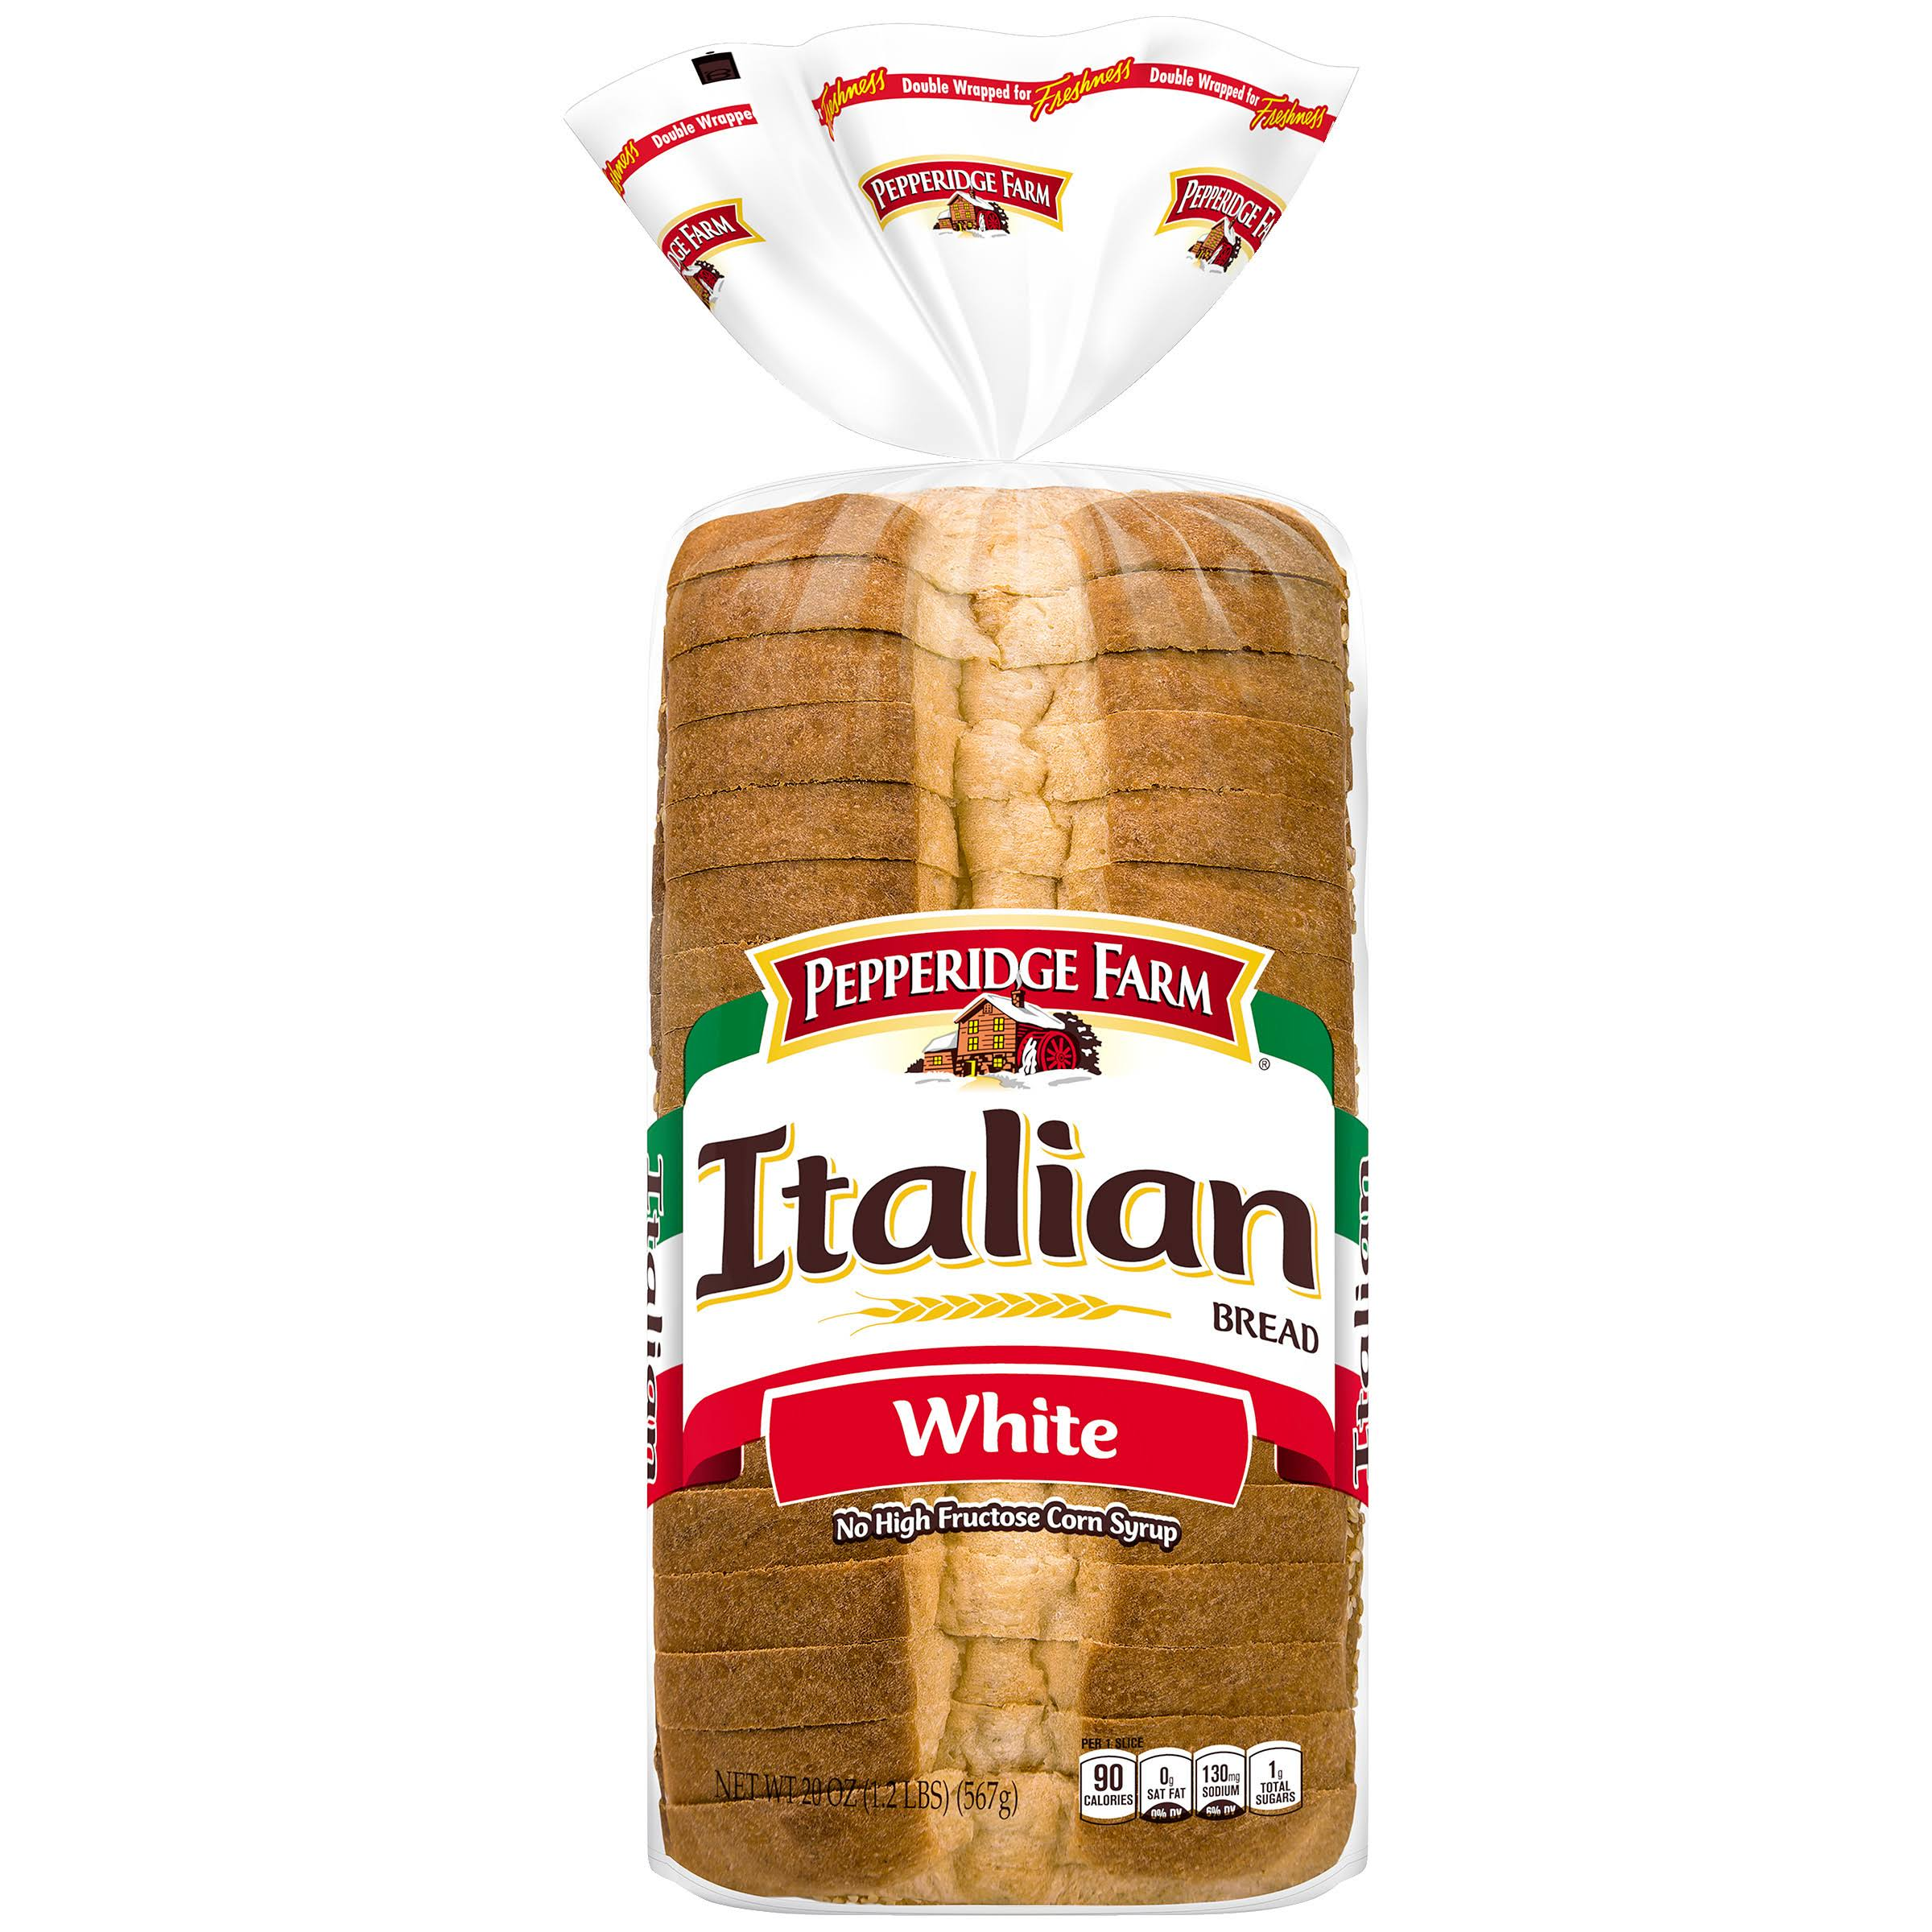 Pepperidge Farm White Italian Bread - 20oz